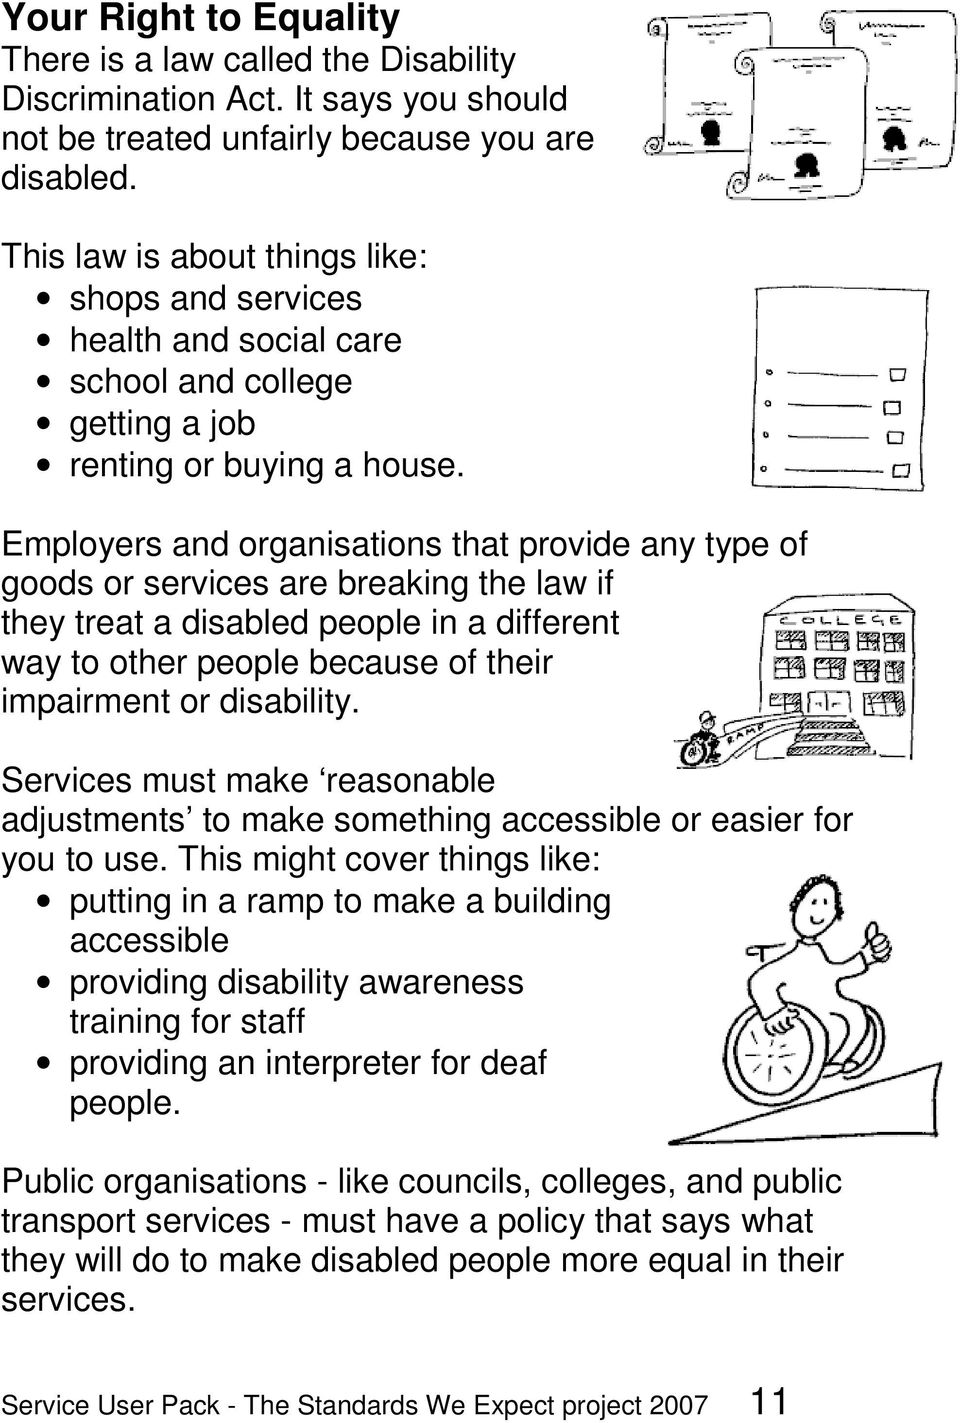 Employers and organisations that provide any type of goods or services are breaking the law if they treat a disabled people in a different way to other people because of their impairment or